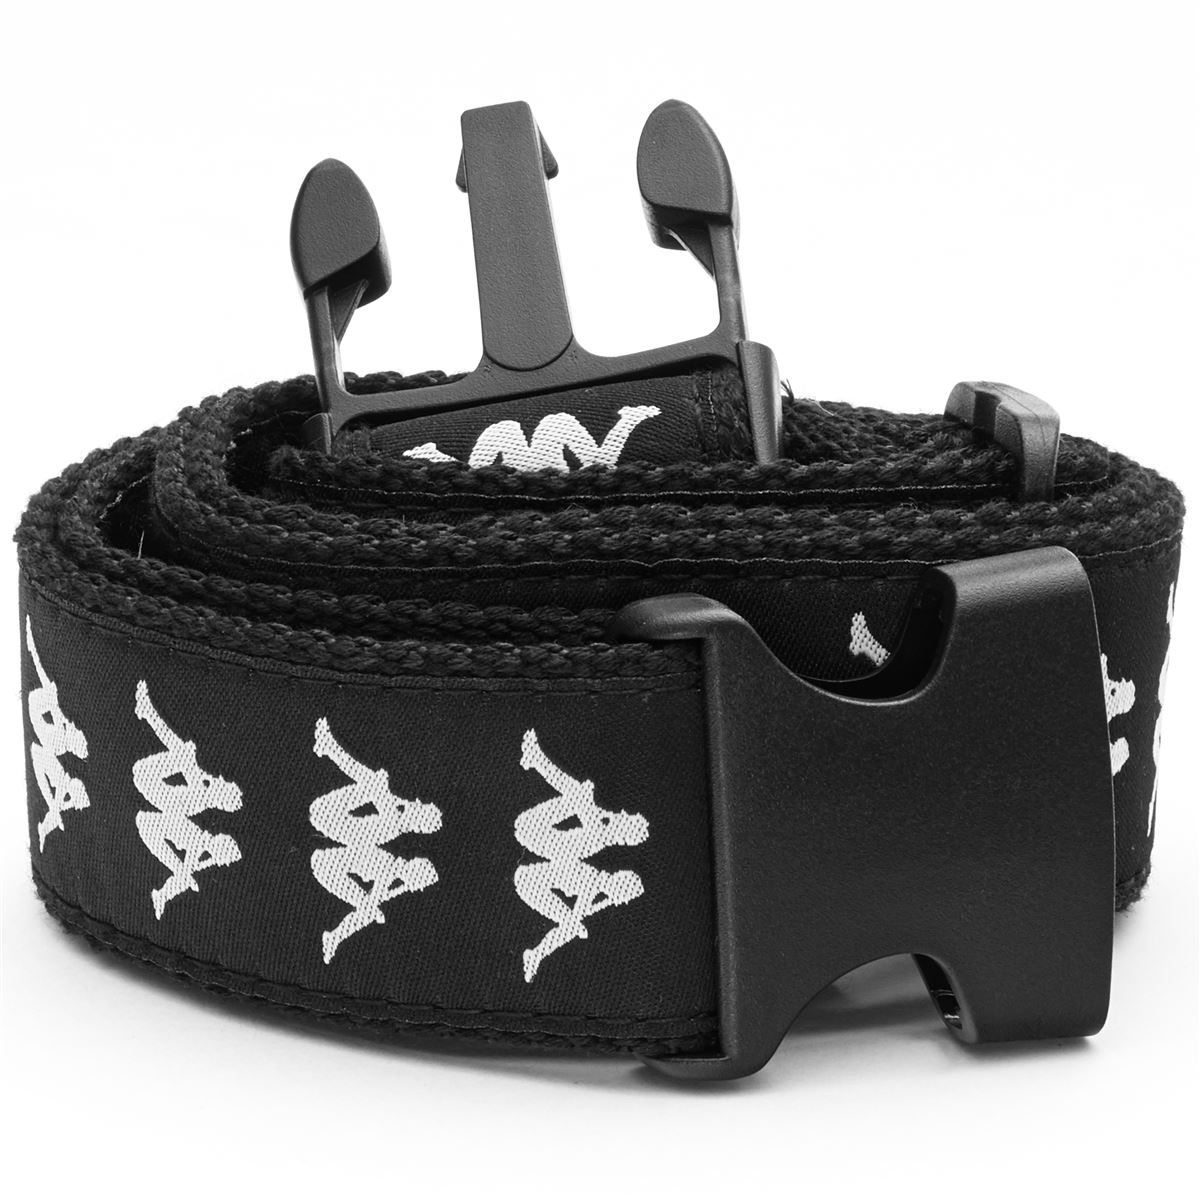 Small Accessories Kappa for men-3111Y2W